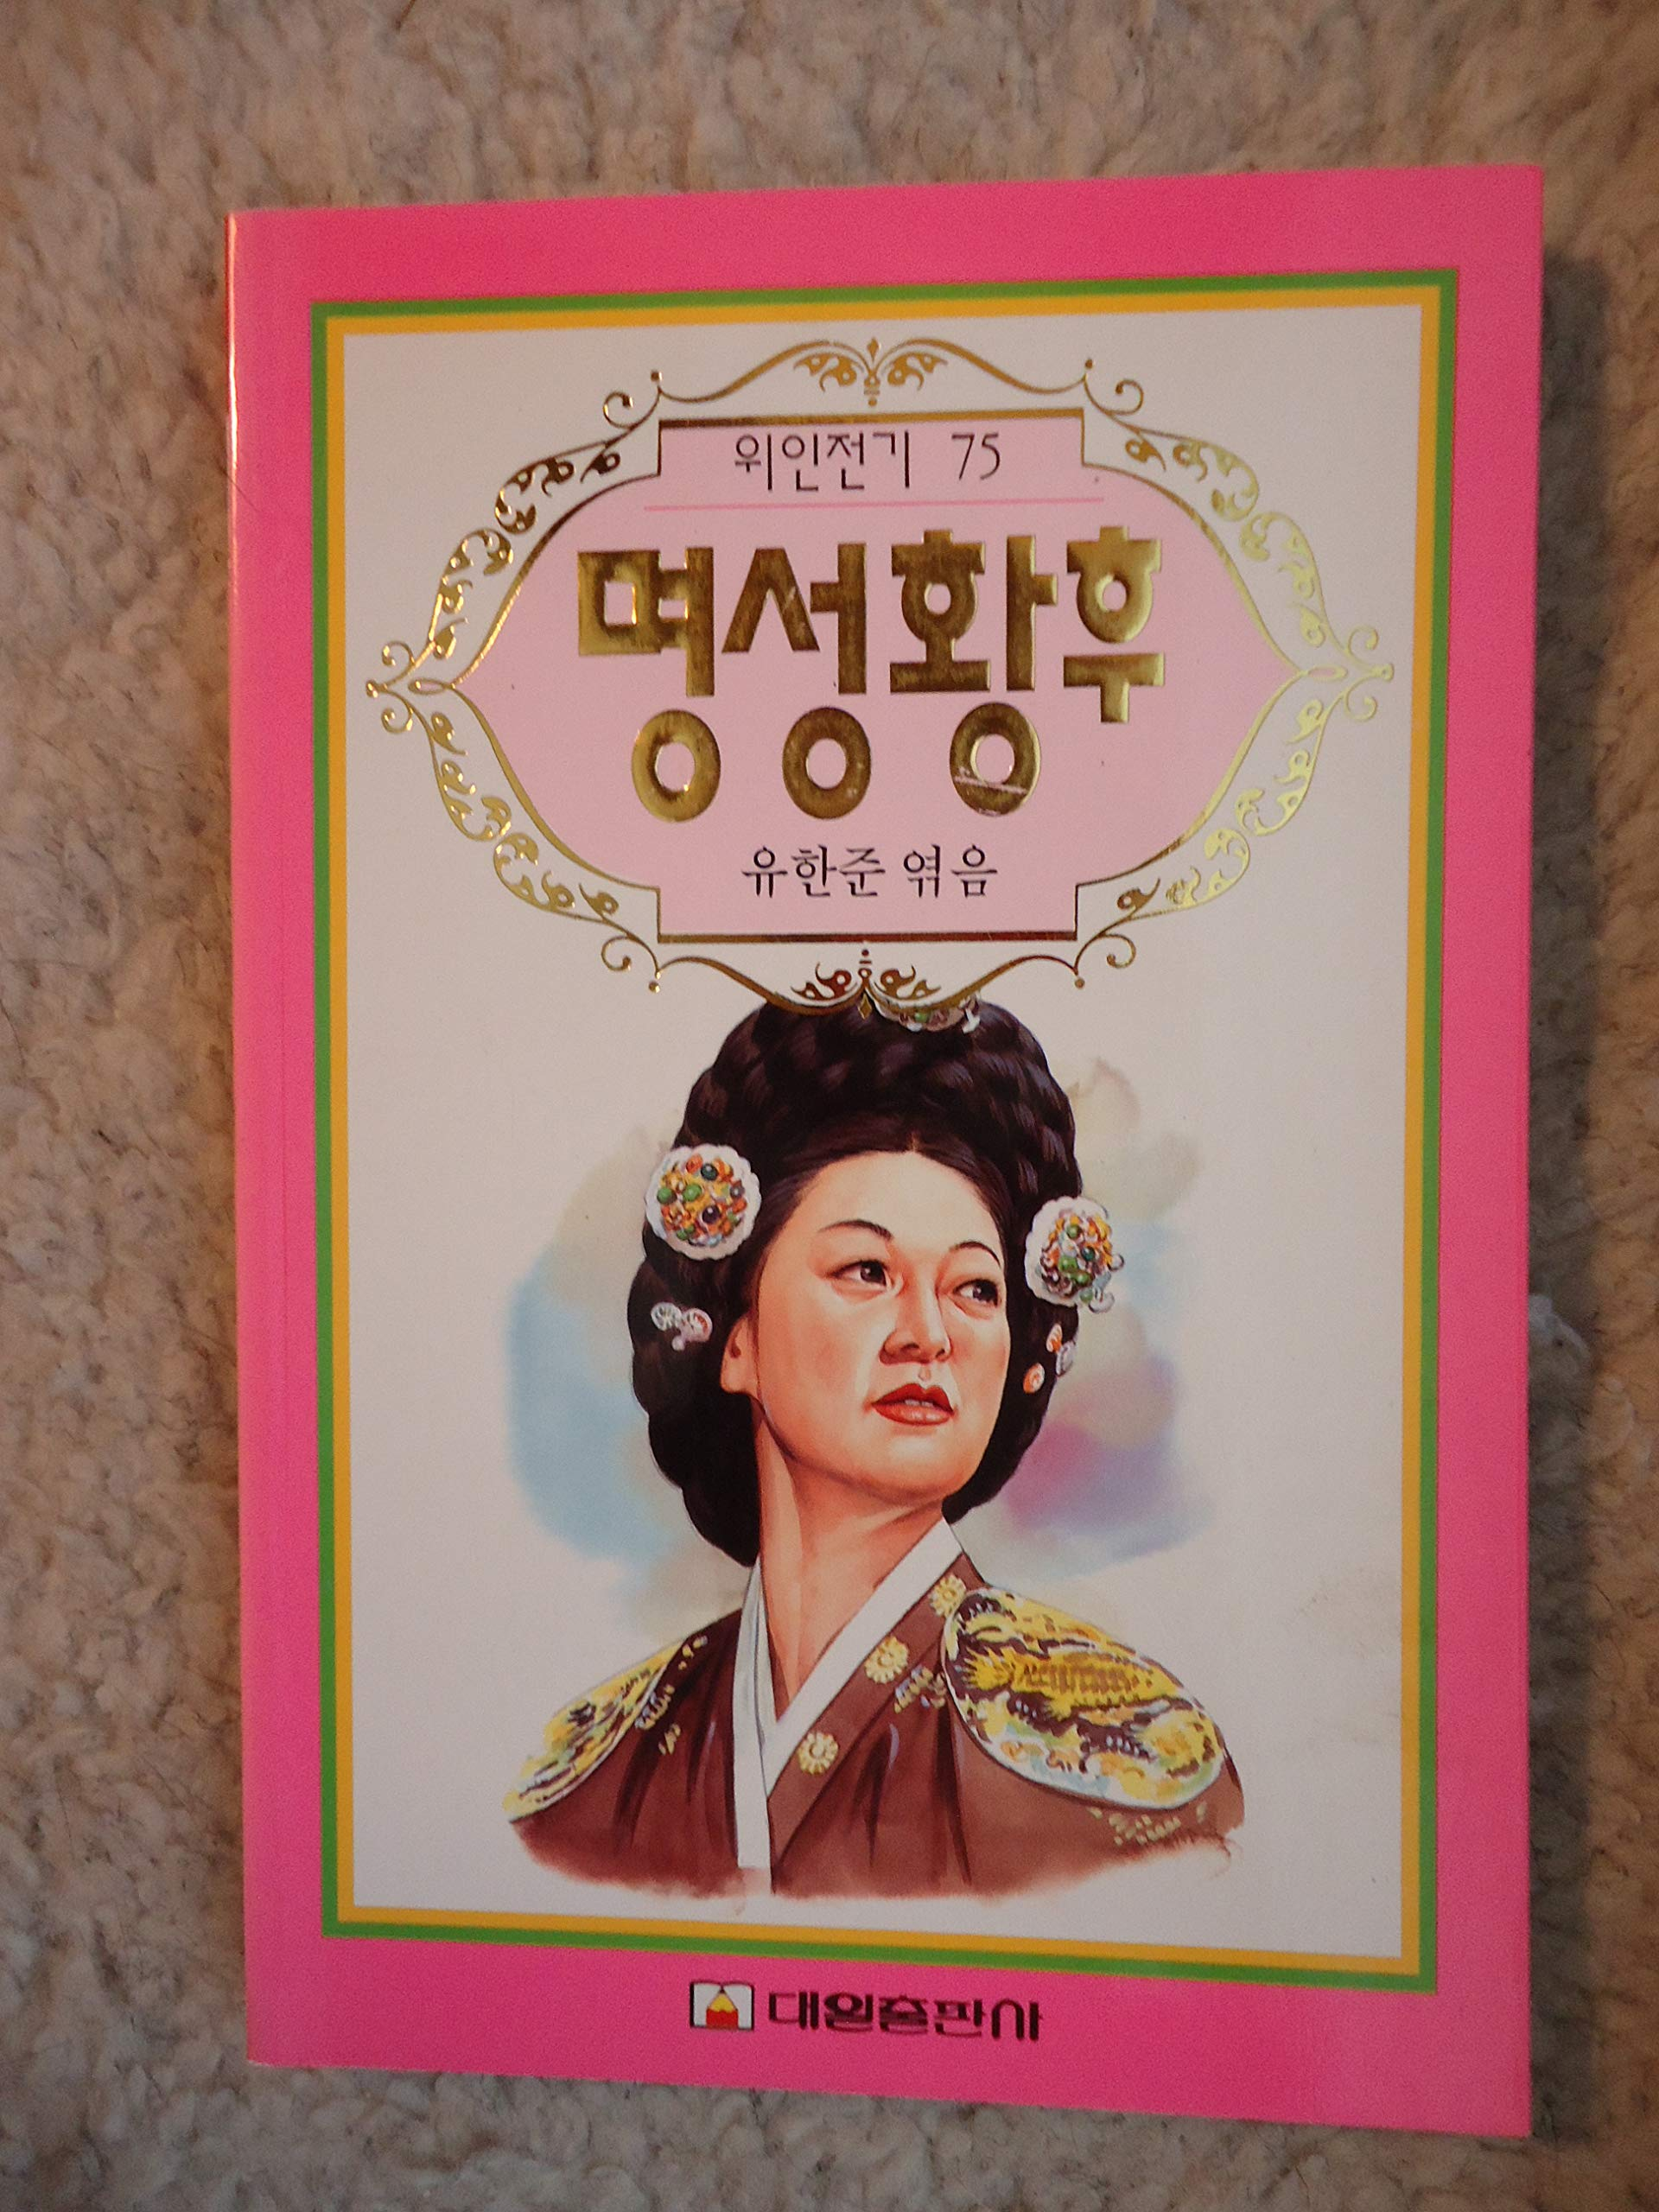 The Last Empress (great electric 75) (Korean edition